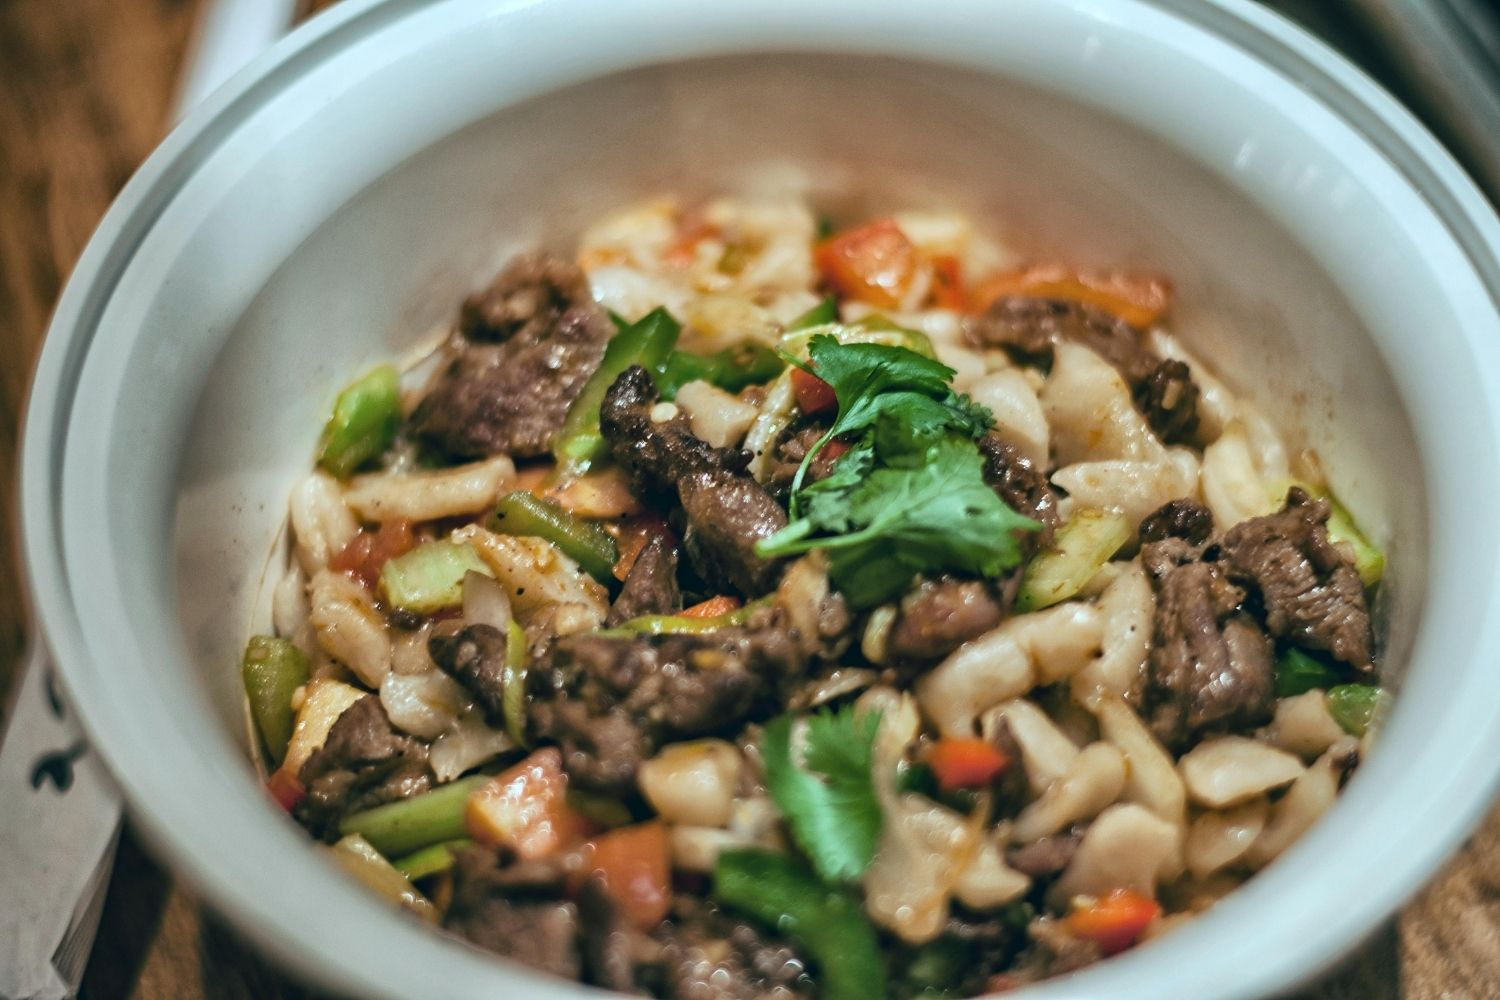 famous Handpulled Noodle Spicy Cumin Lamb Stir Fry with Ding Ding Noodles